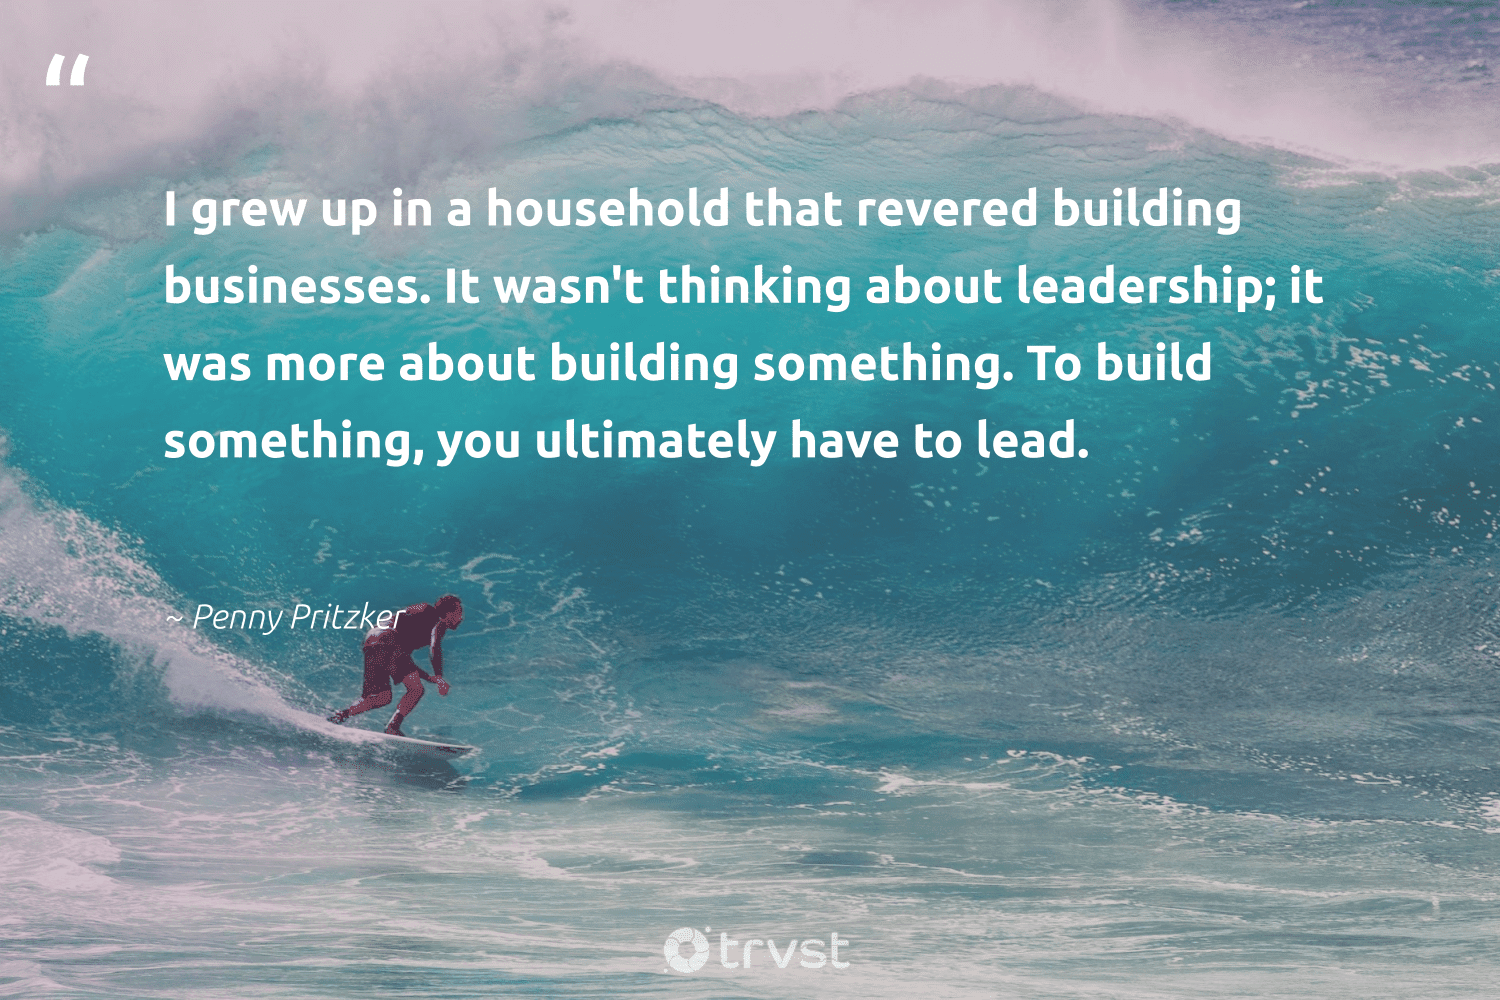 """I grew up in a household that revered building businesses. It wasn't thinking about leadership; it was more about building something. To build something, you ultimately have to lead.""  - Penny Pritzker #trvst #quotes #futureofwork #bethechange #nevergiveup #planetearthfirst #begreat #socialchange #softskills #changetheworld #takeaction #beinspired"